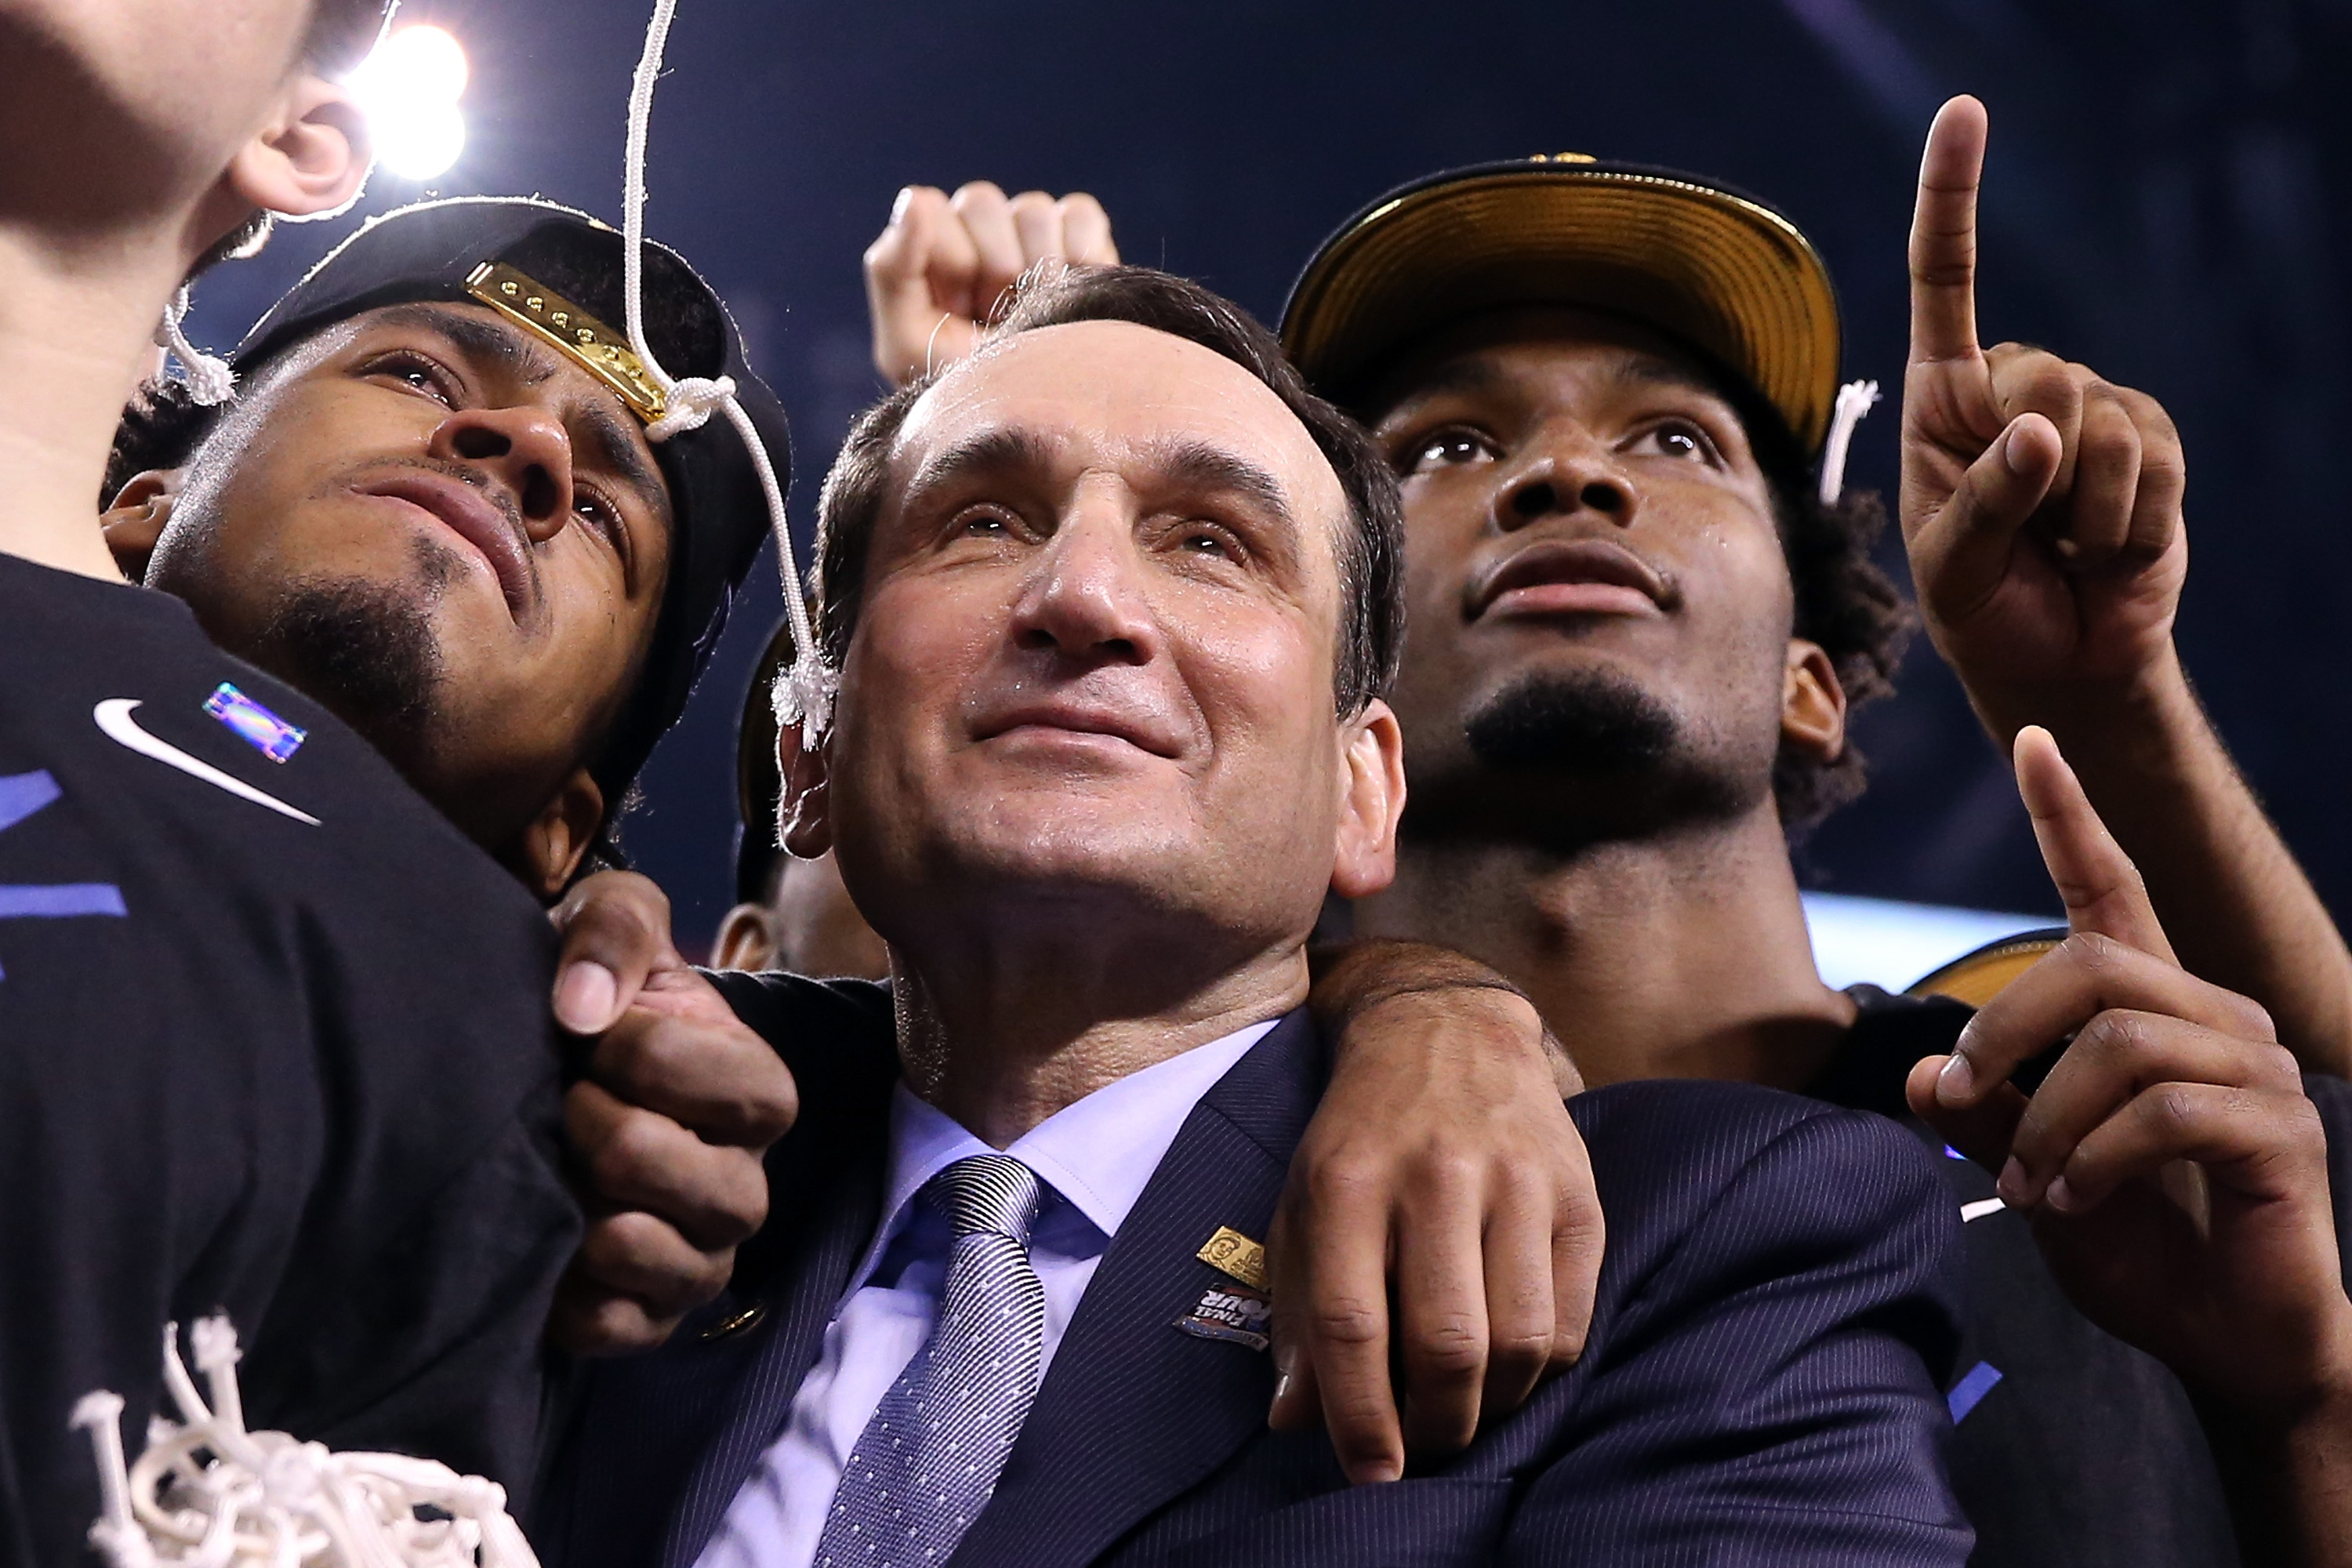 Duke head coach Mike Krzyzewski after the Blue Devils defeat the Wisconsin Badgers at Lucas Oil Stadium in Indianapolis on April 6, 2015